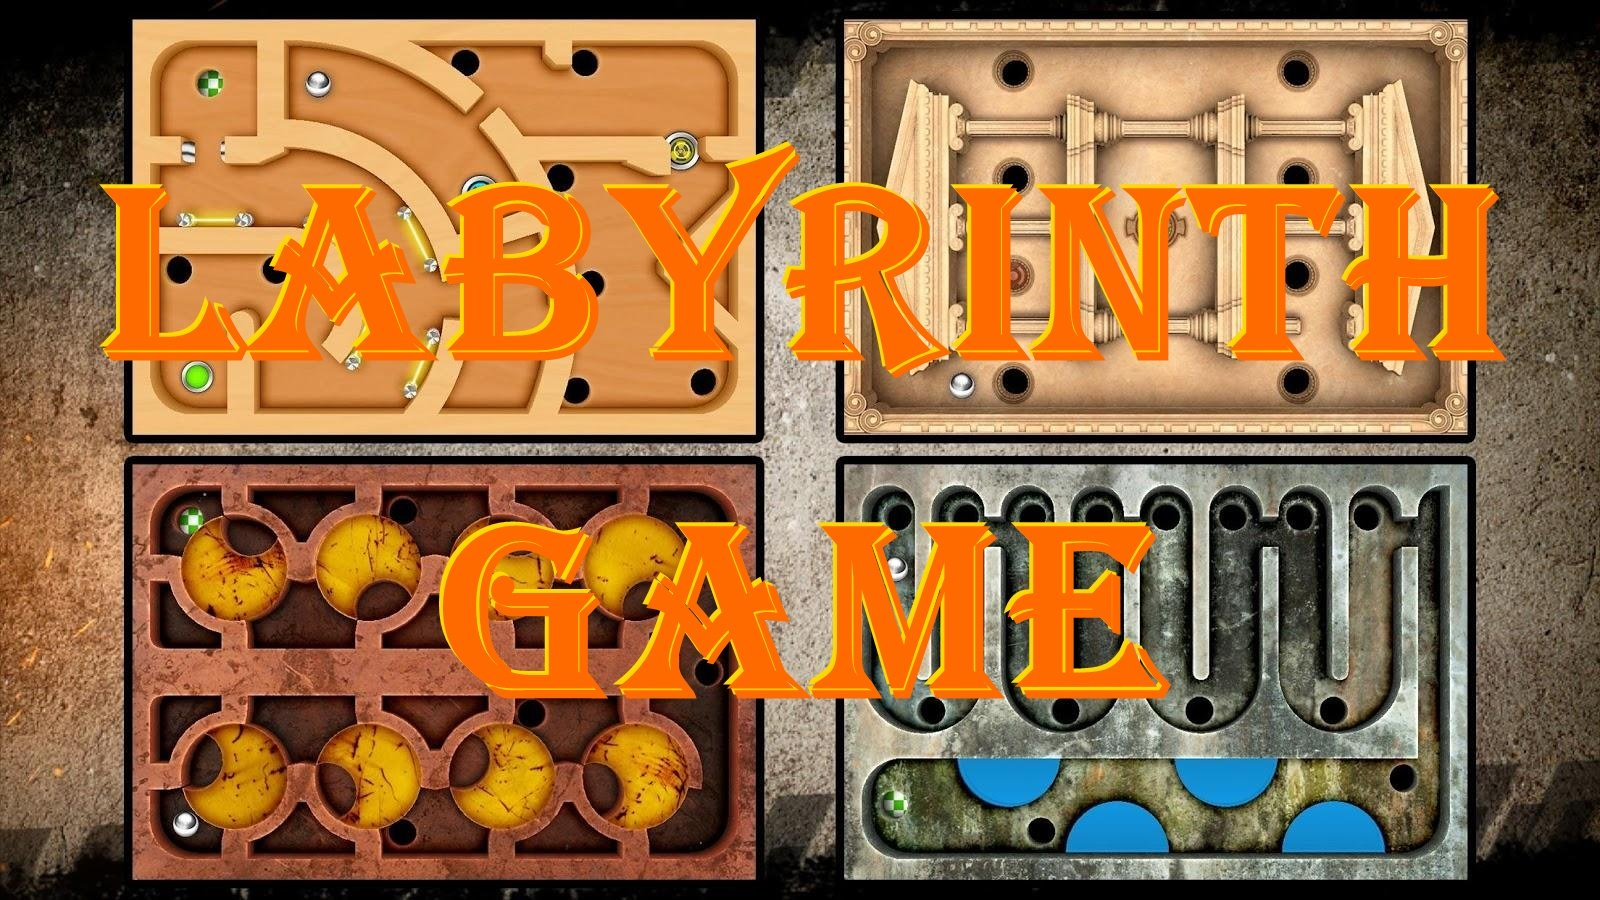 GemCraft Labyrinth - Play on Armor Games